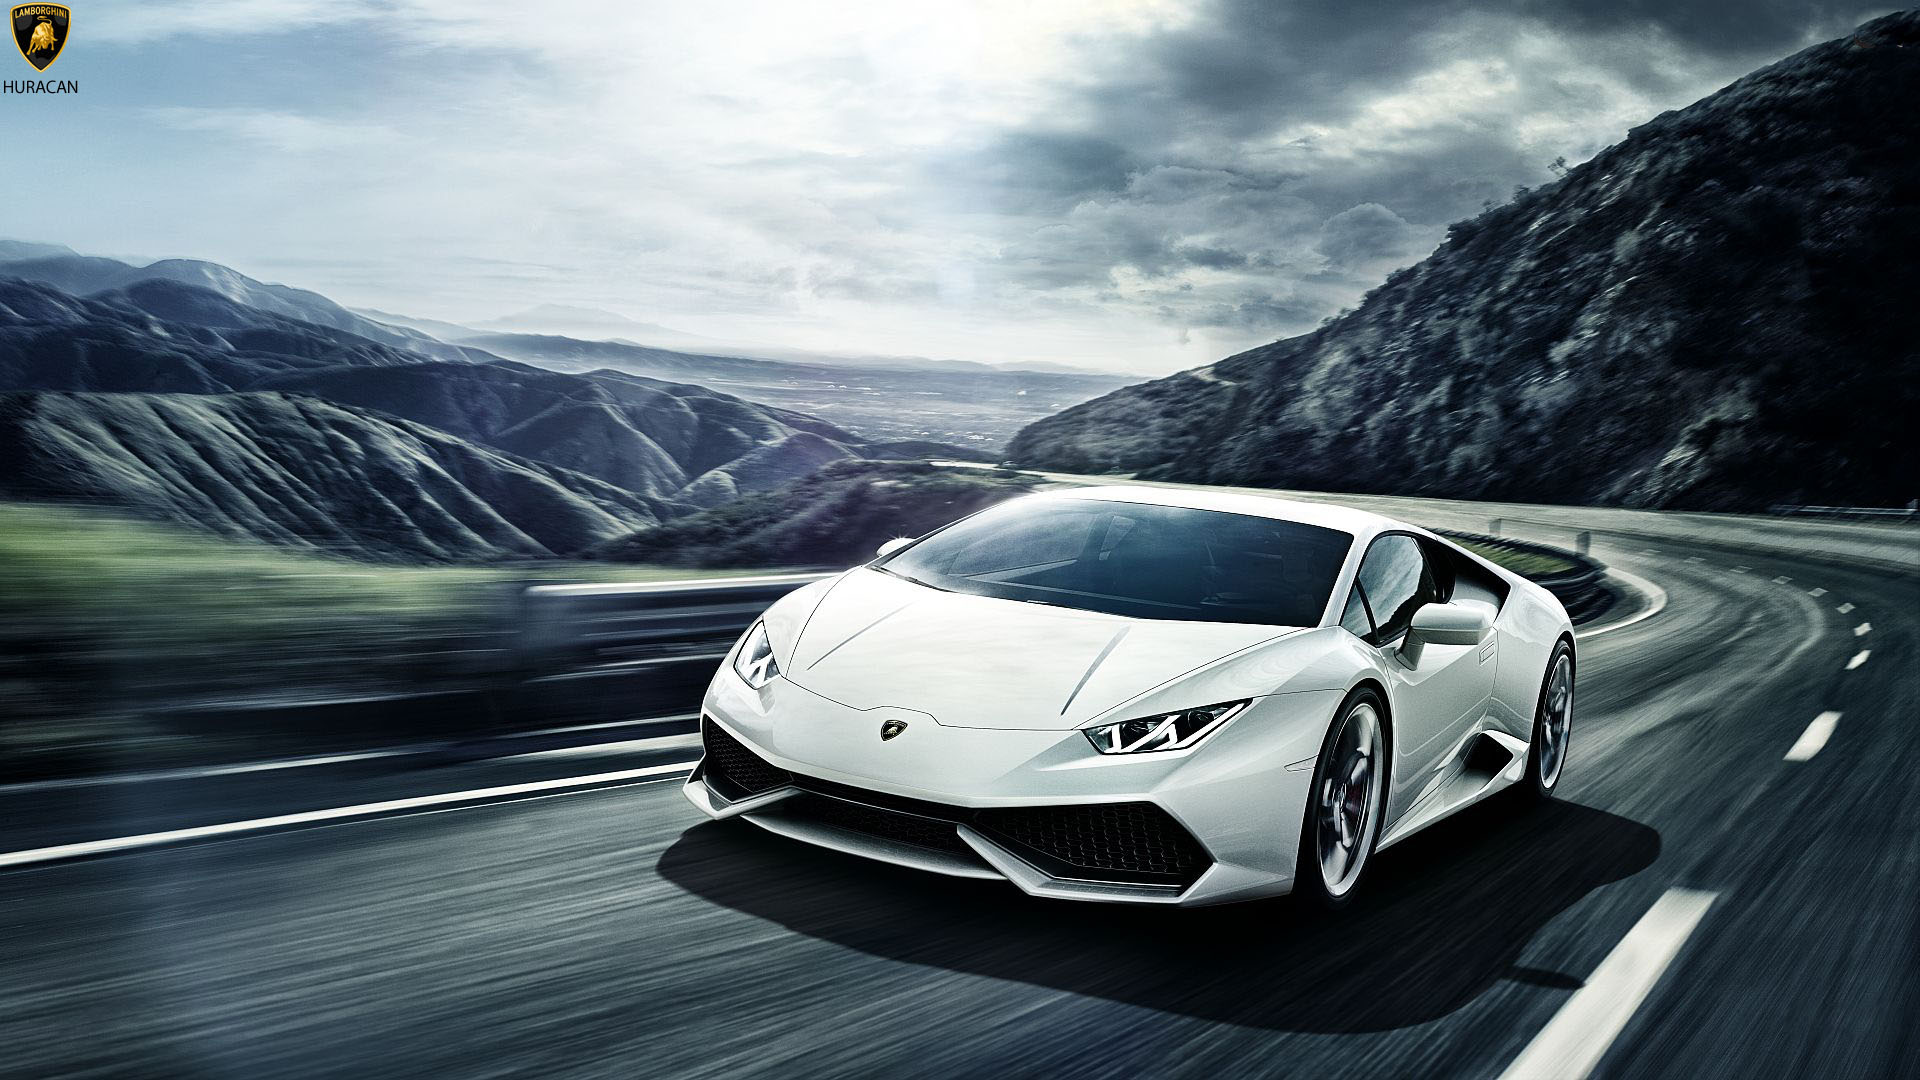 white latest lamborghini huracan wallpaper hd - Lamborghini Huracan Wallpaper